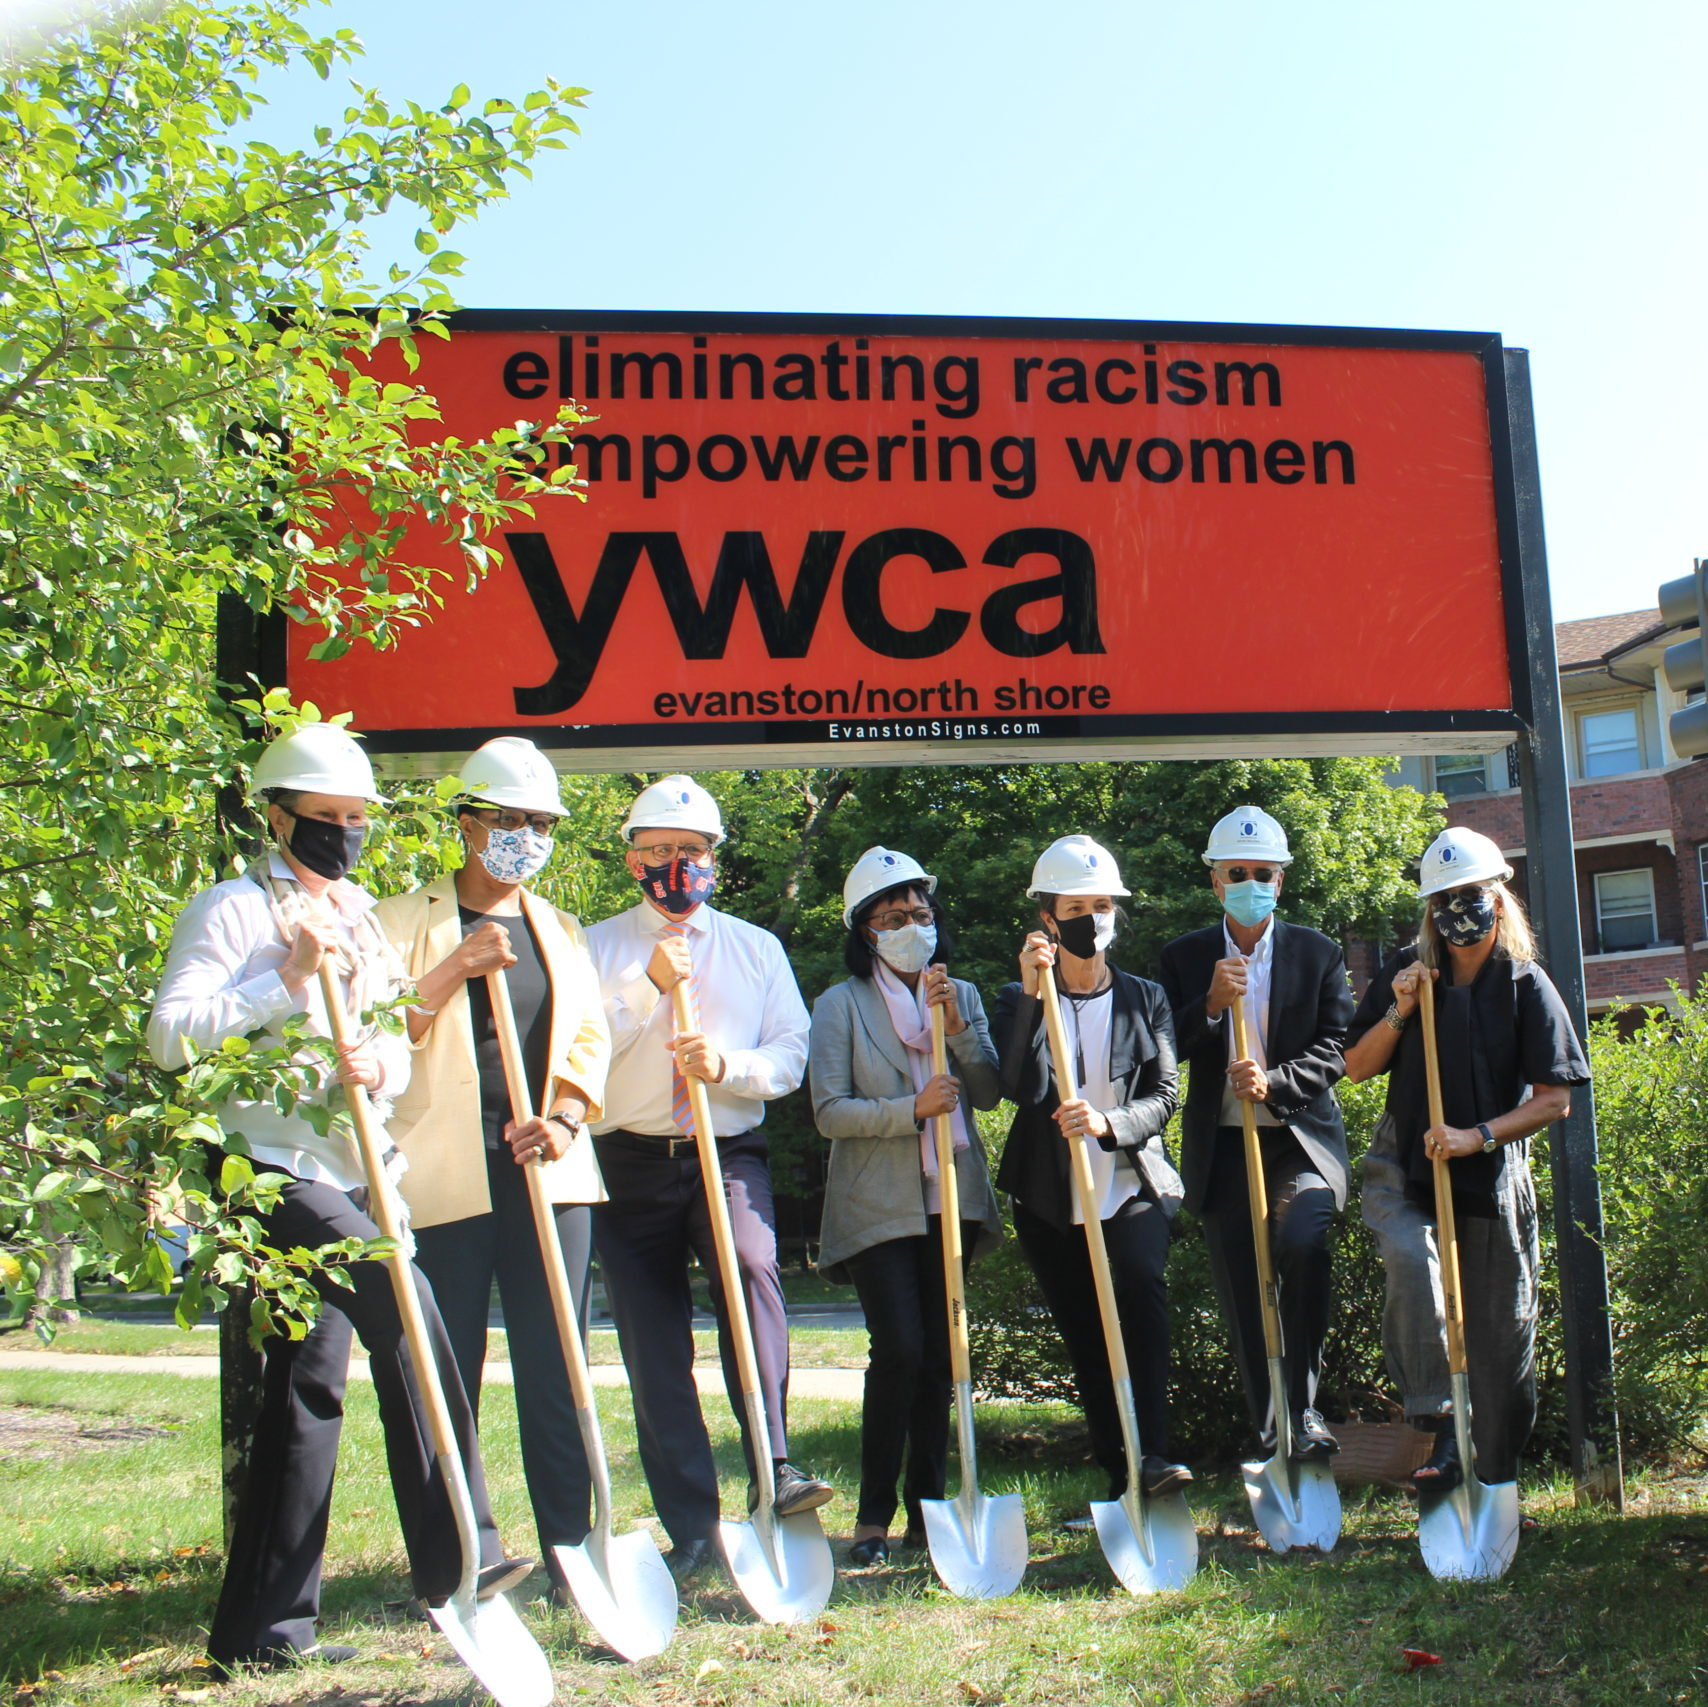 Groundbreaking for YWCA's new campus